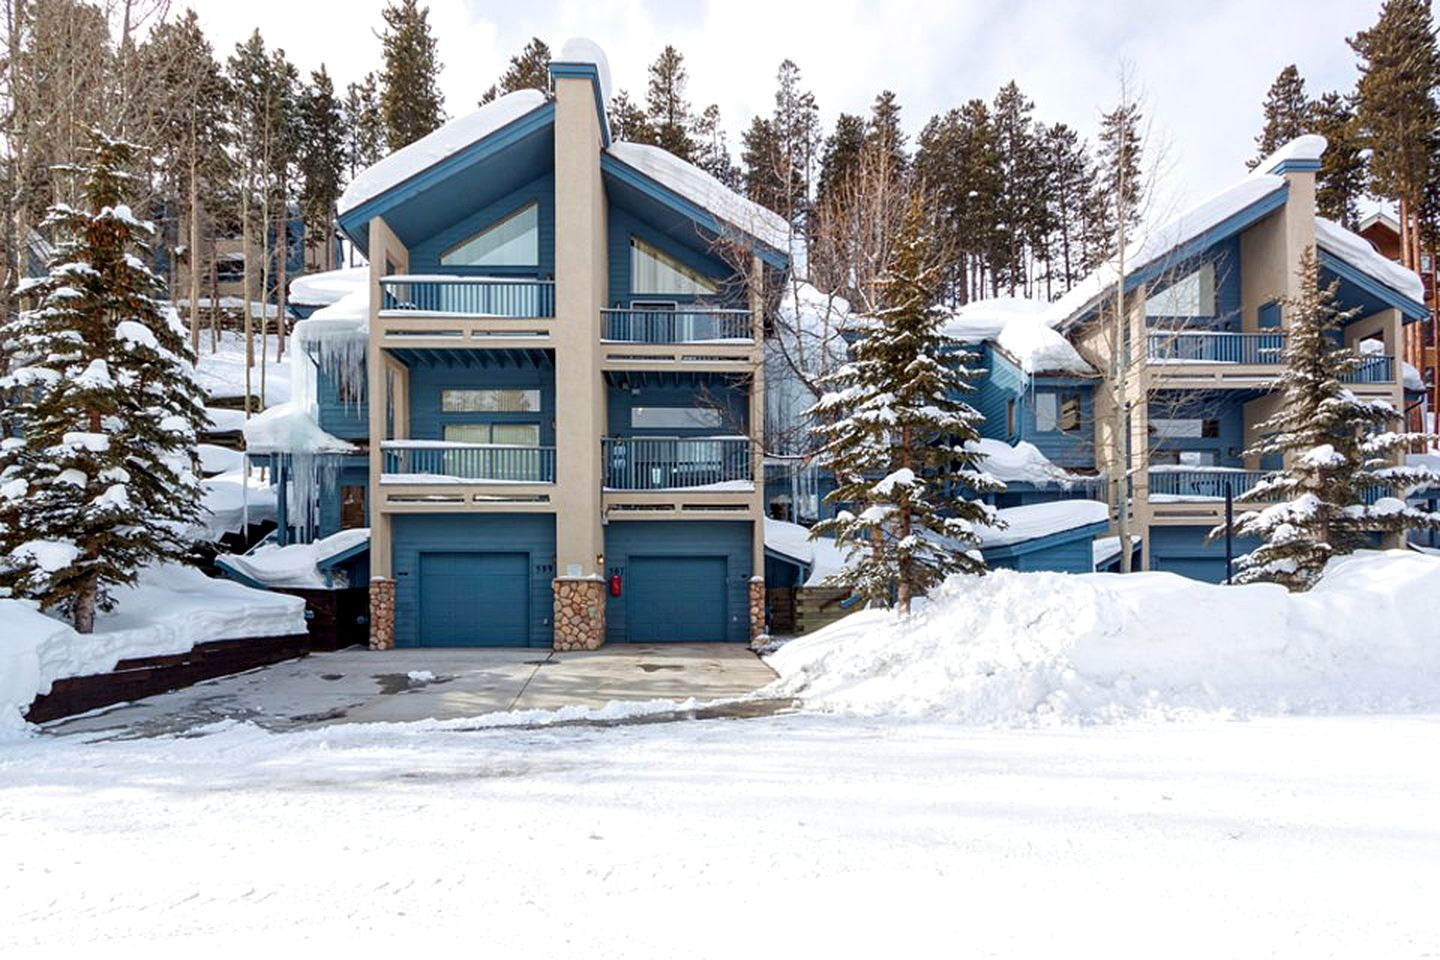 Vacation Rentals (Breckenridge, Colorado, United States)